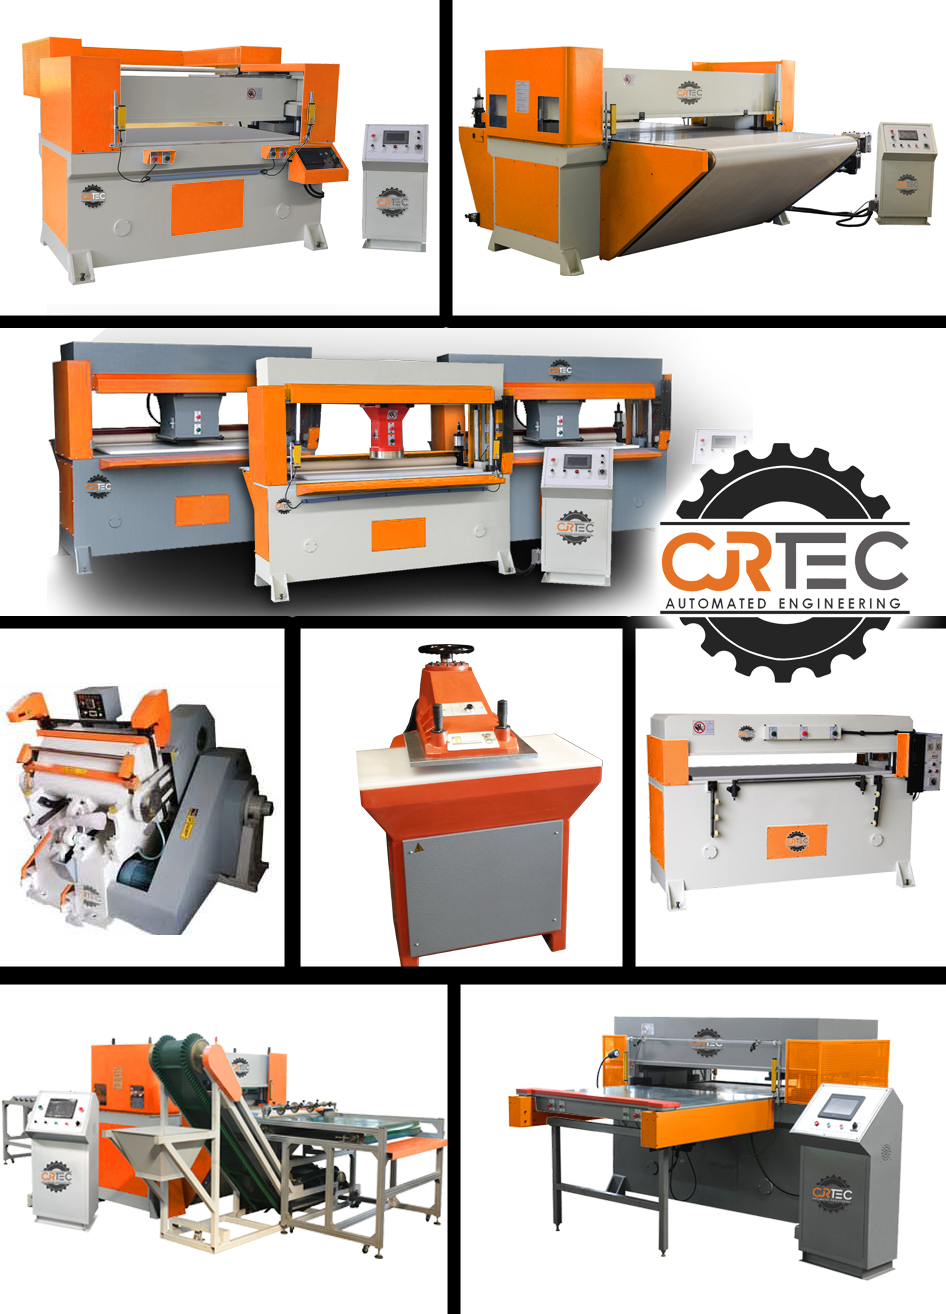 clicker press machines